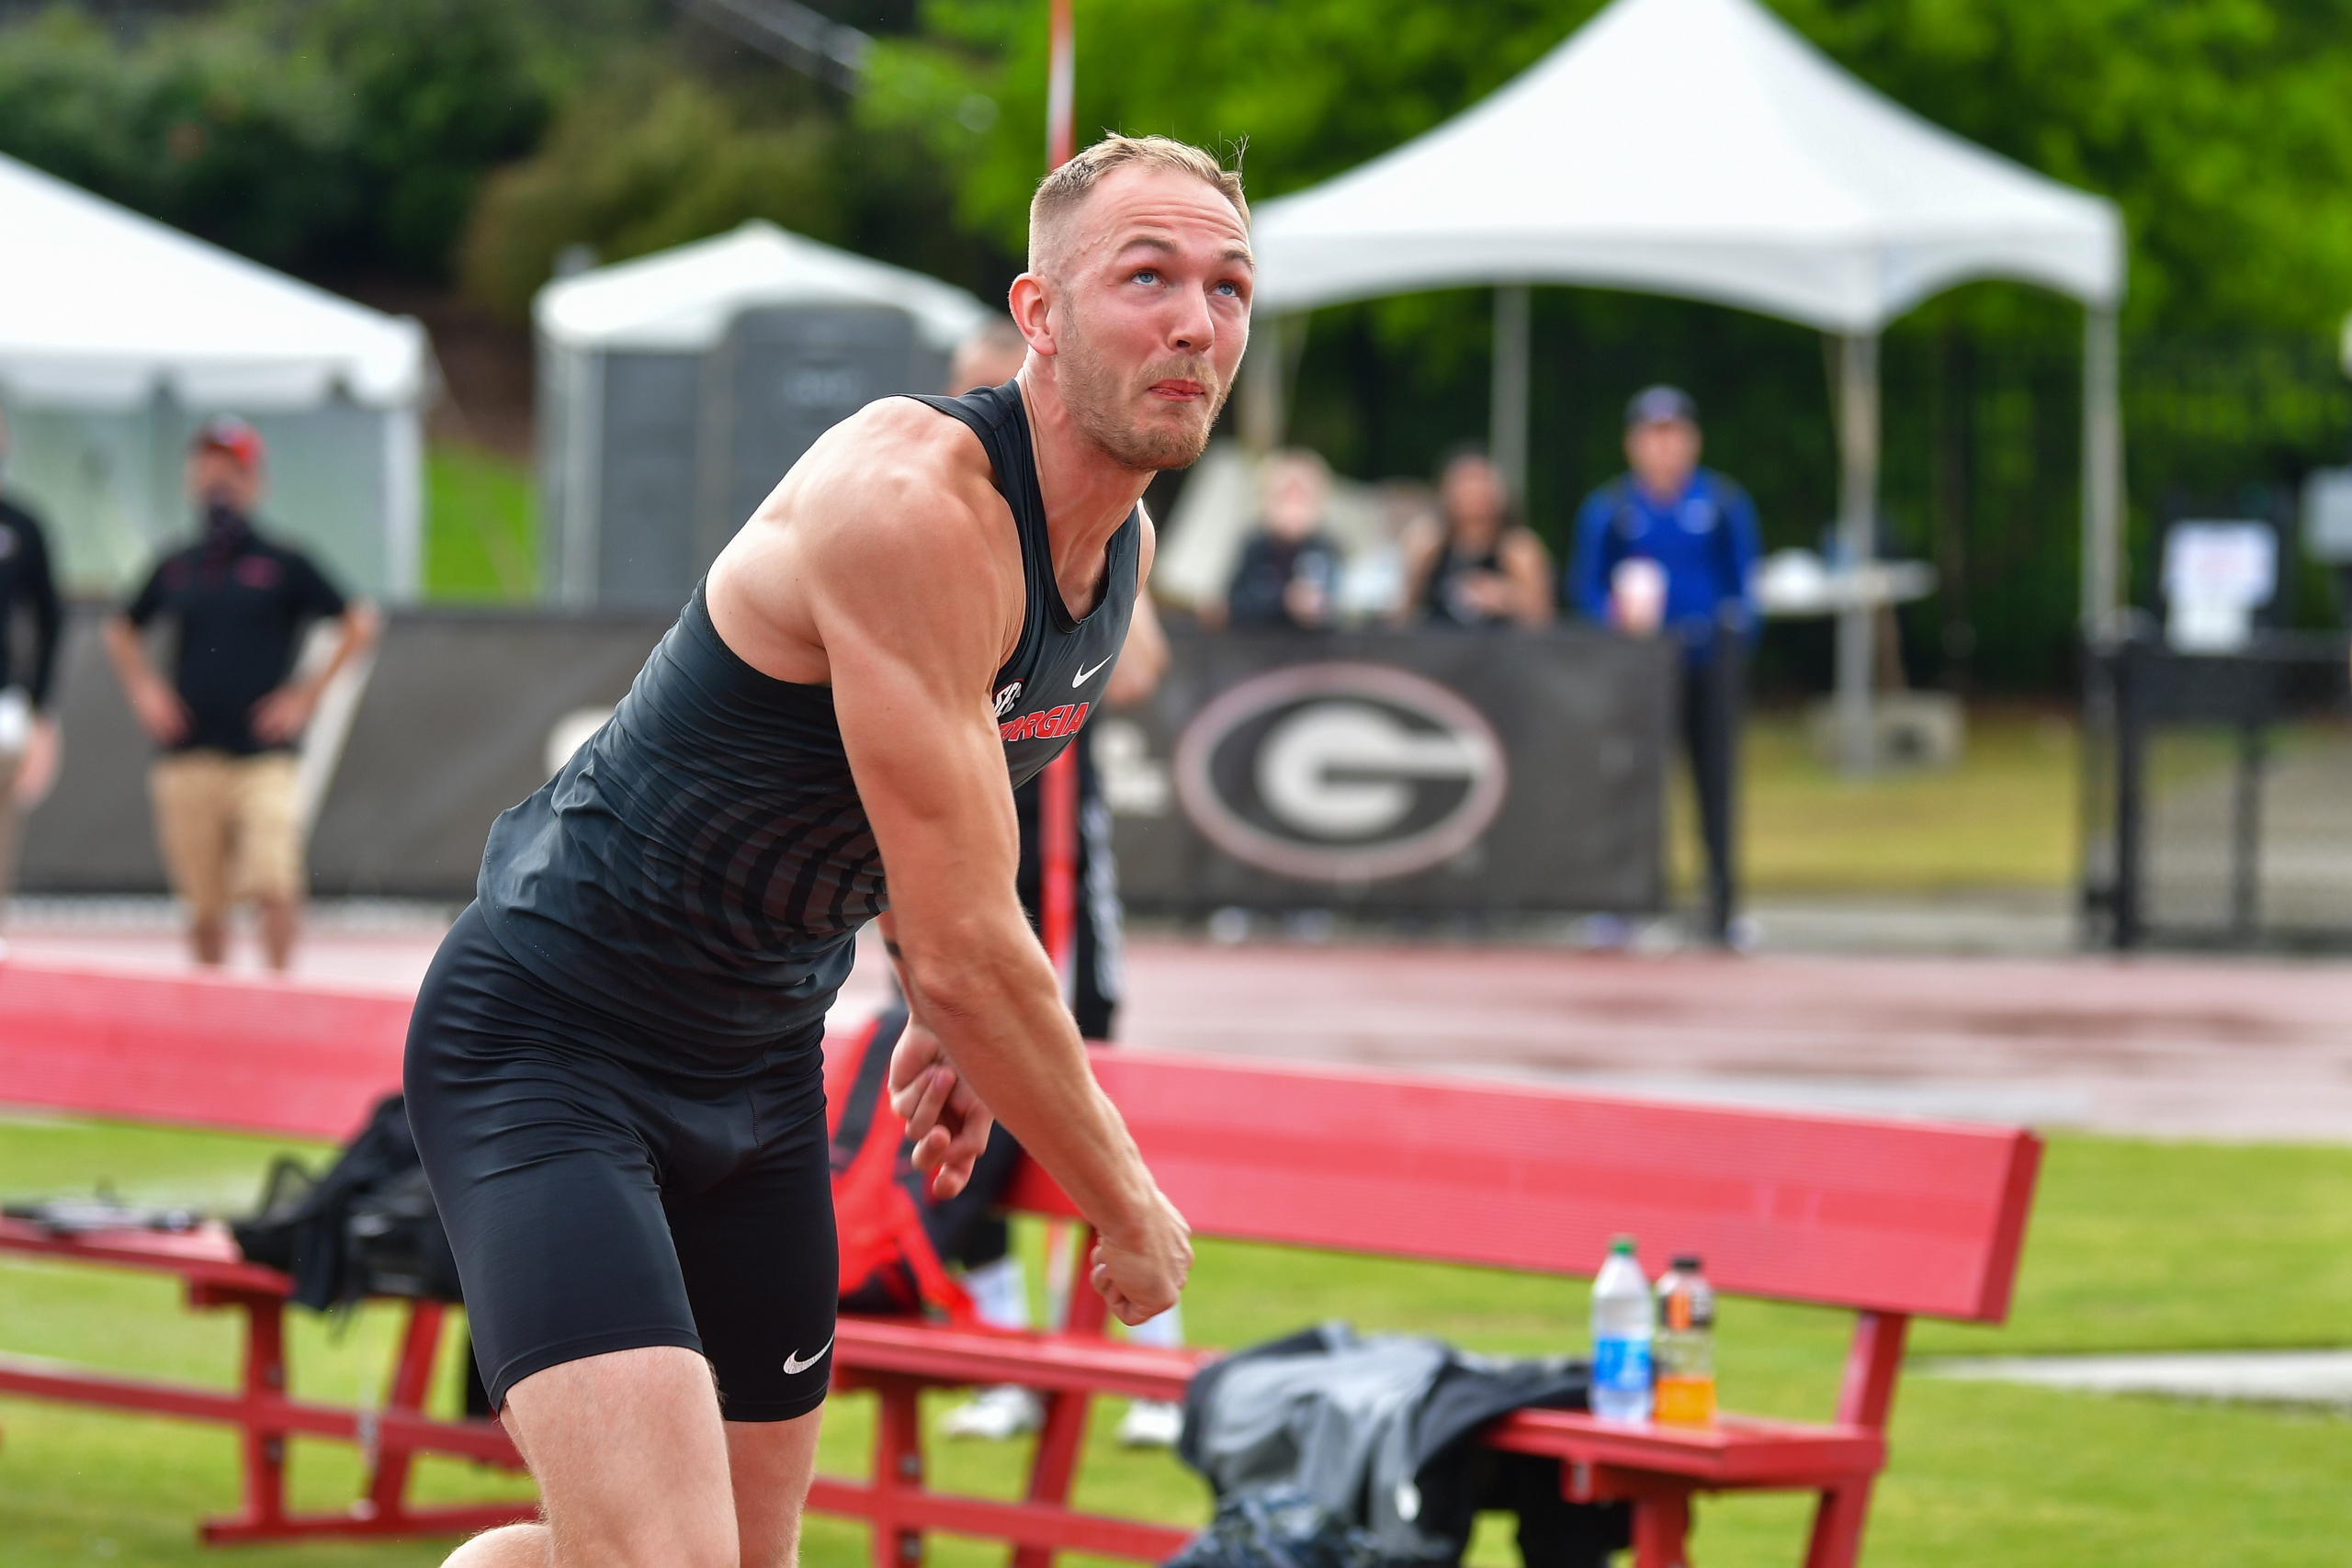 Georgia's Karel Tilga during the Spec Towns Invitational at the Spec Towns Track in Athens, Ga., on Saturday, April 10, 2021. (Photo by Rob Davis)